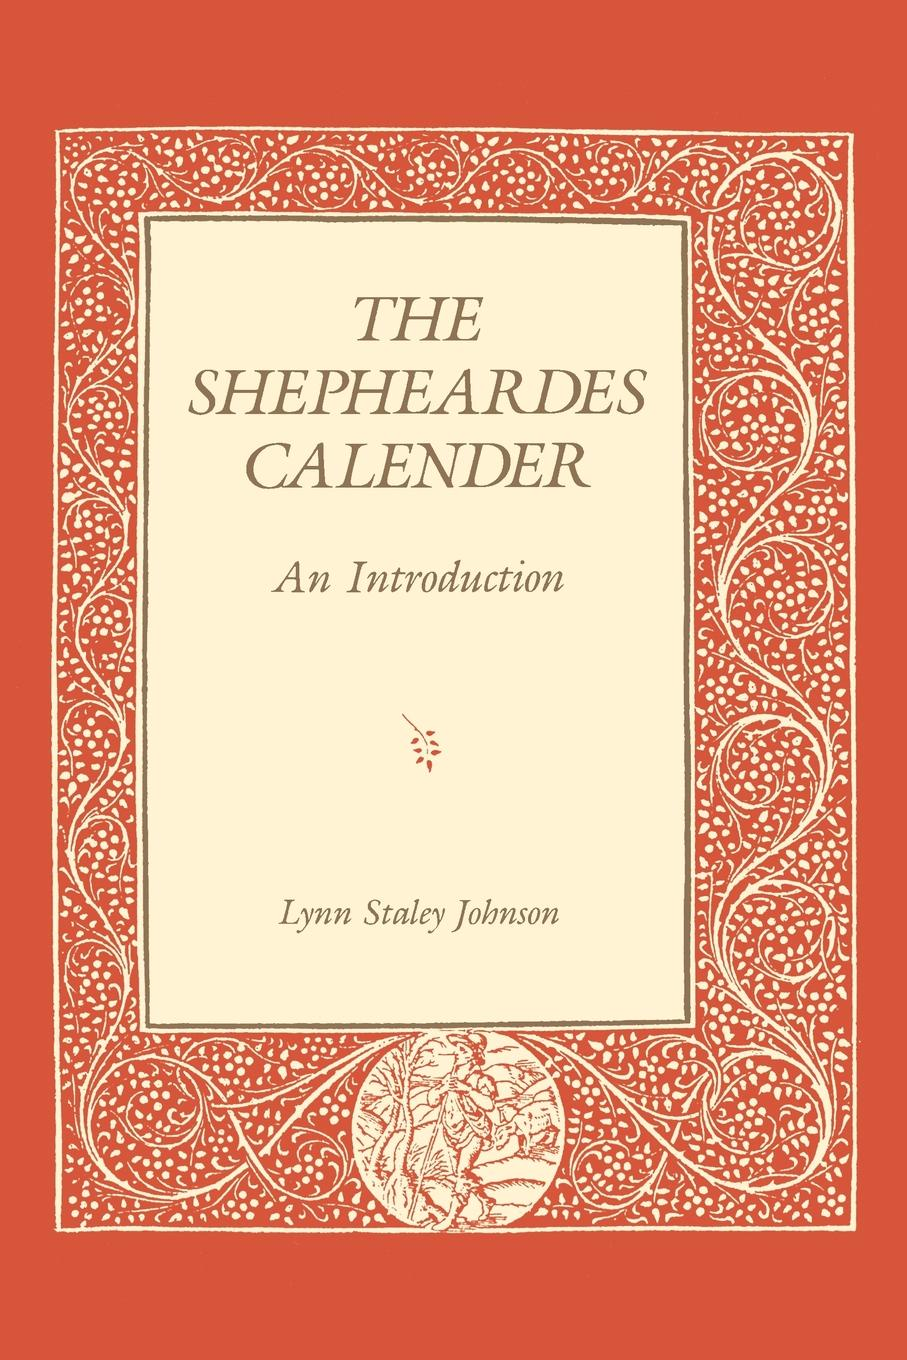 Lynn Staley Johnson, Lynn Staley The Shepheardes Calender. An Introduction